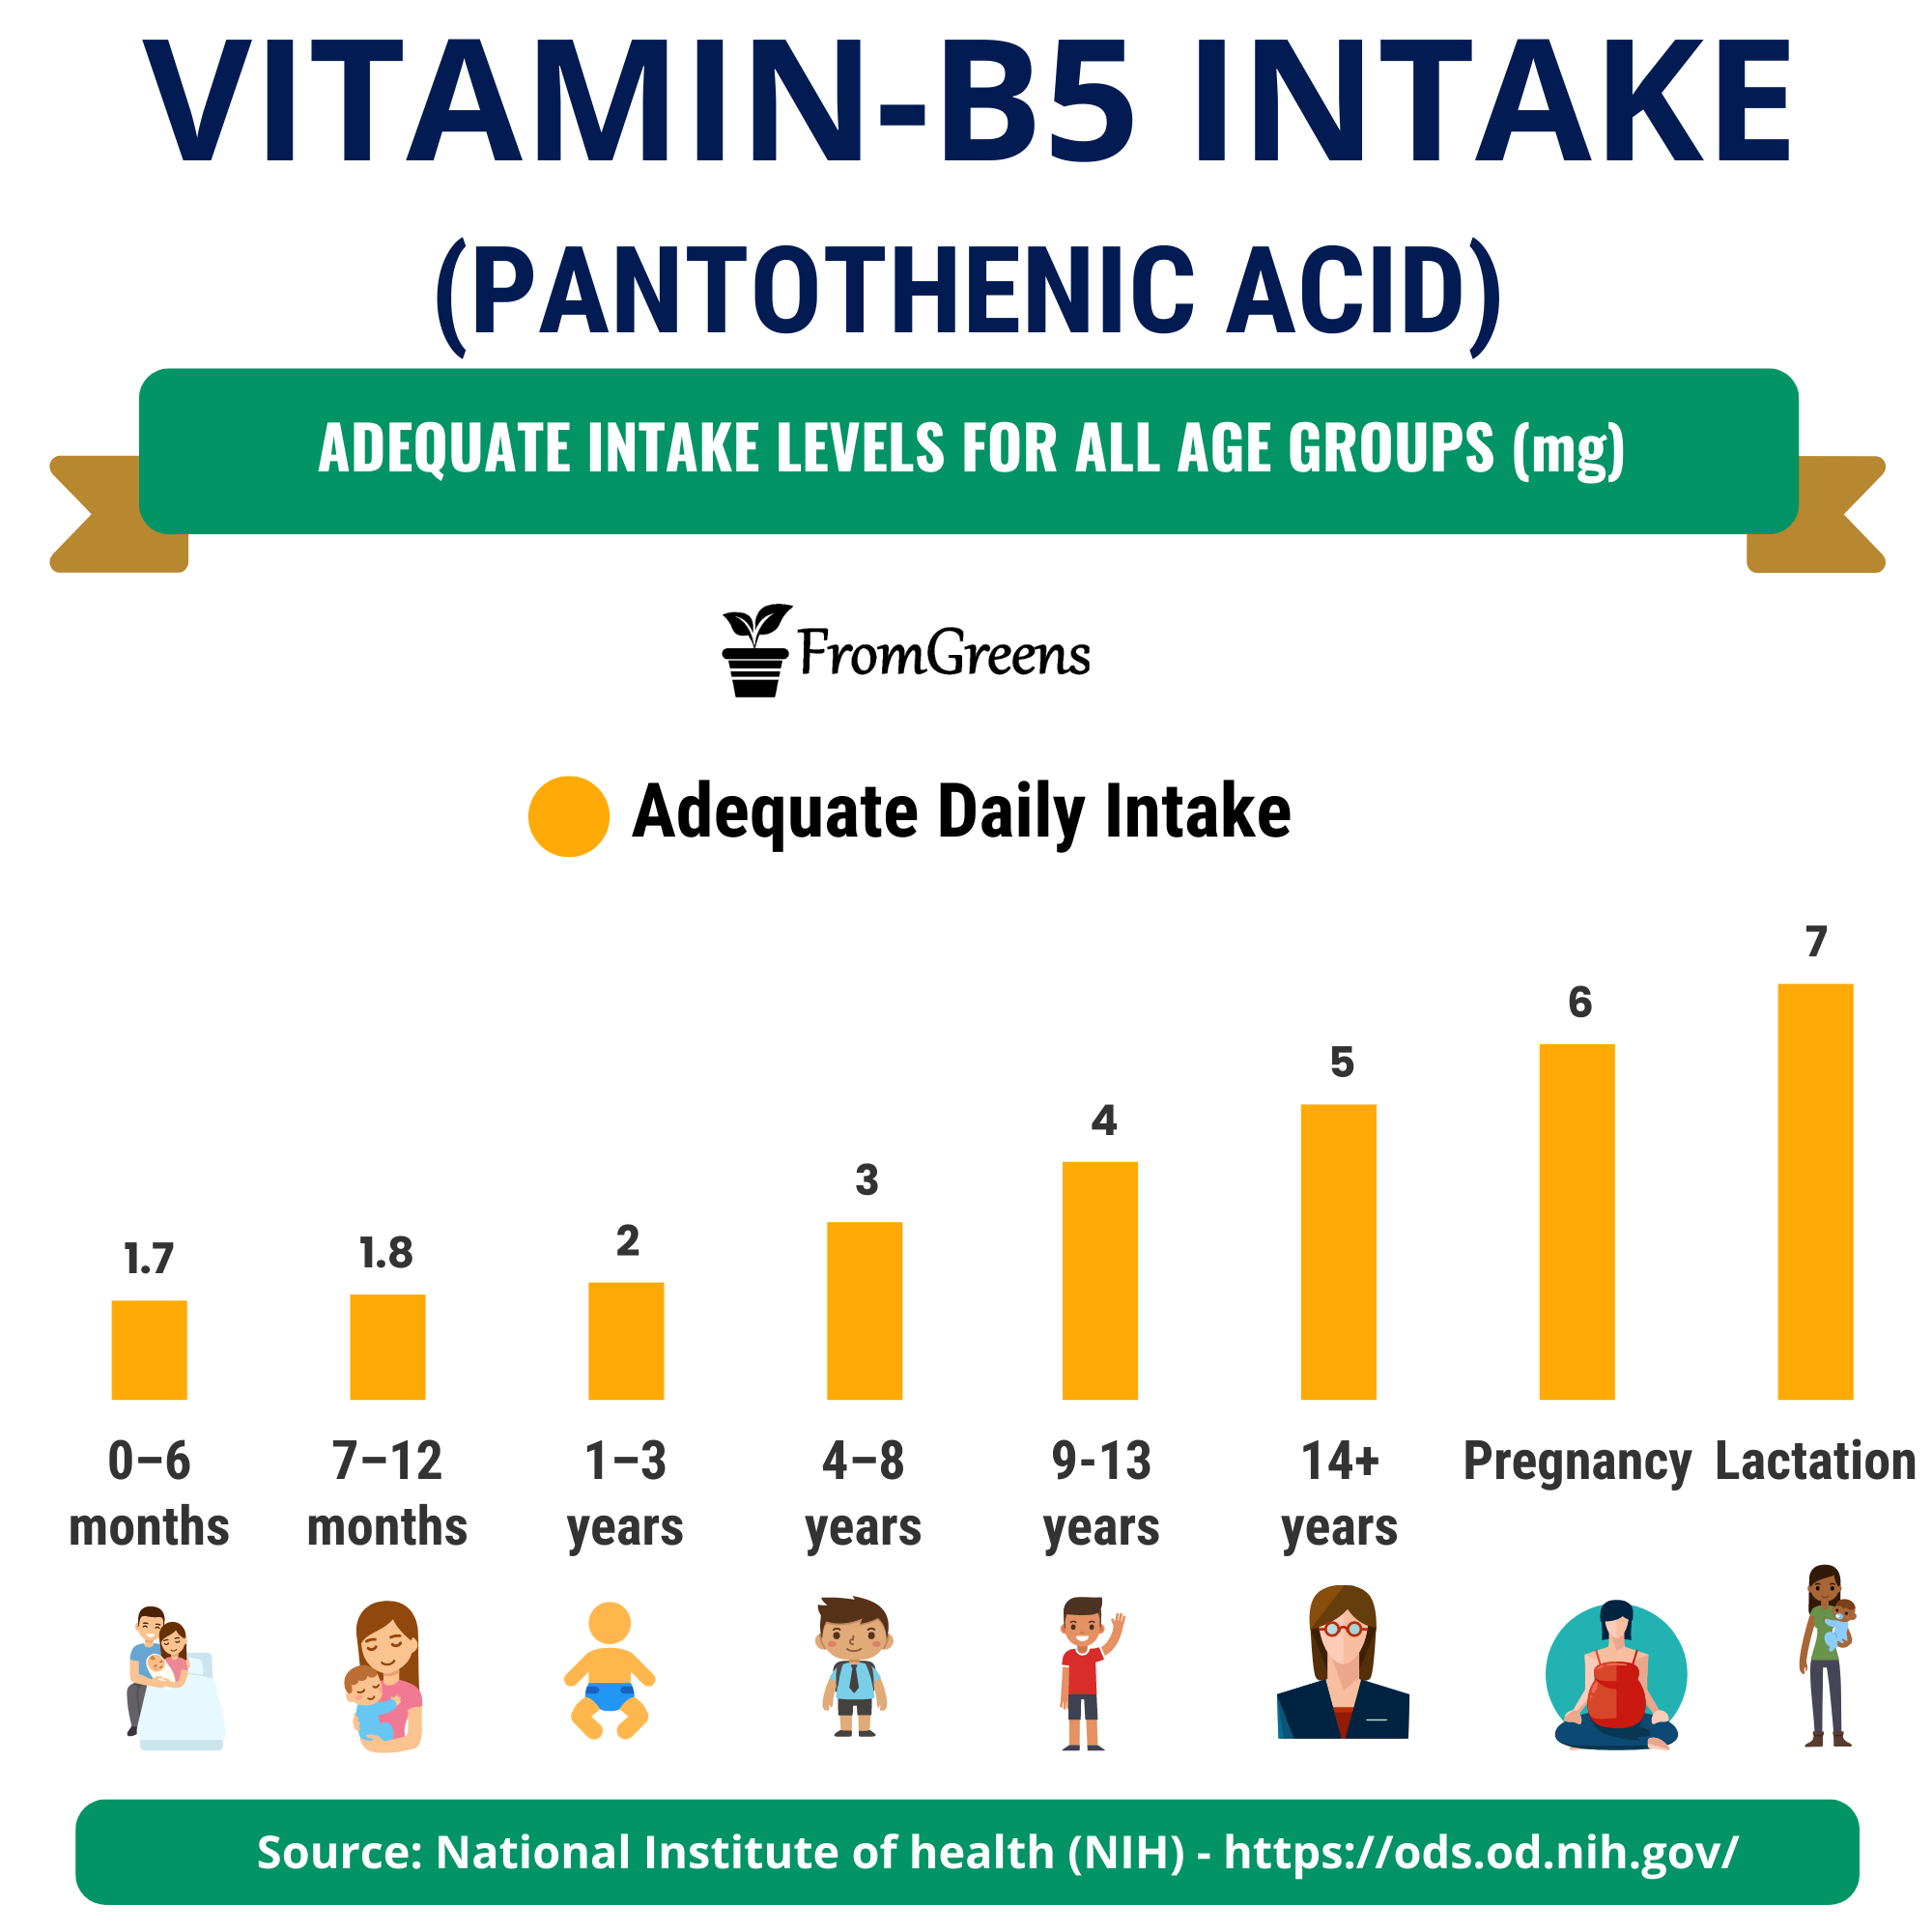 how much vitamin b5 pantothenic acid is recommended daily